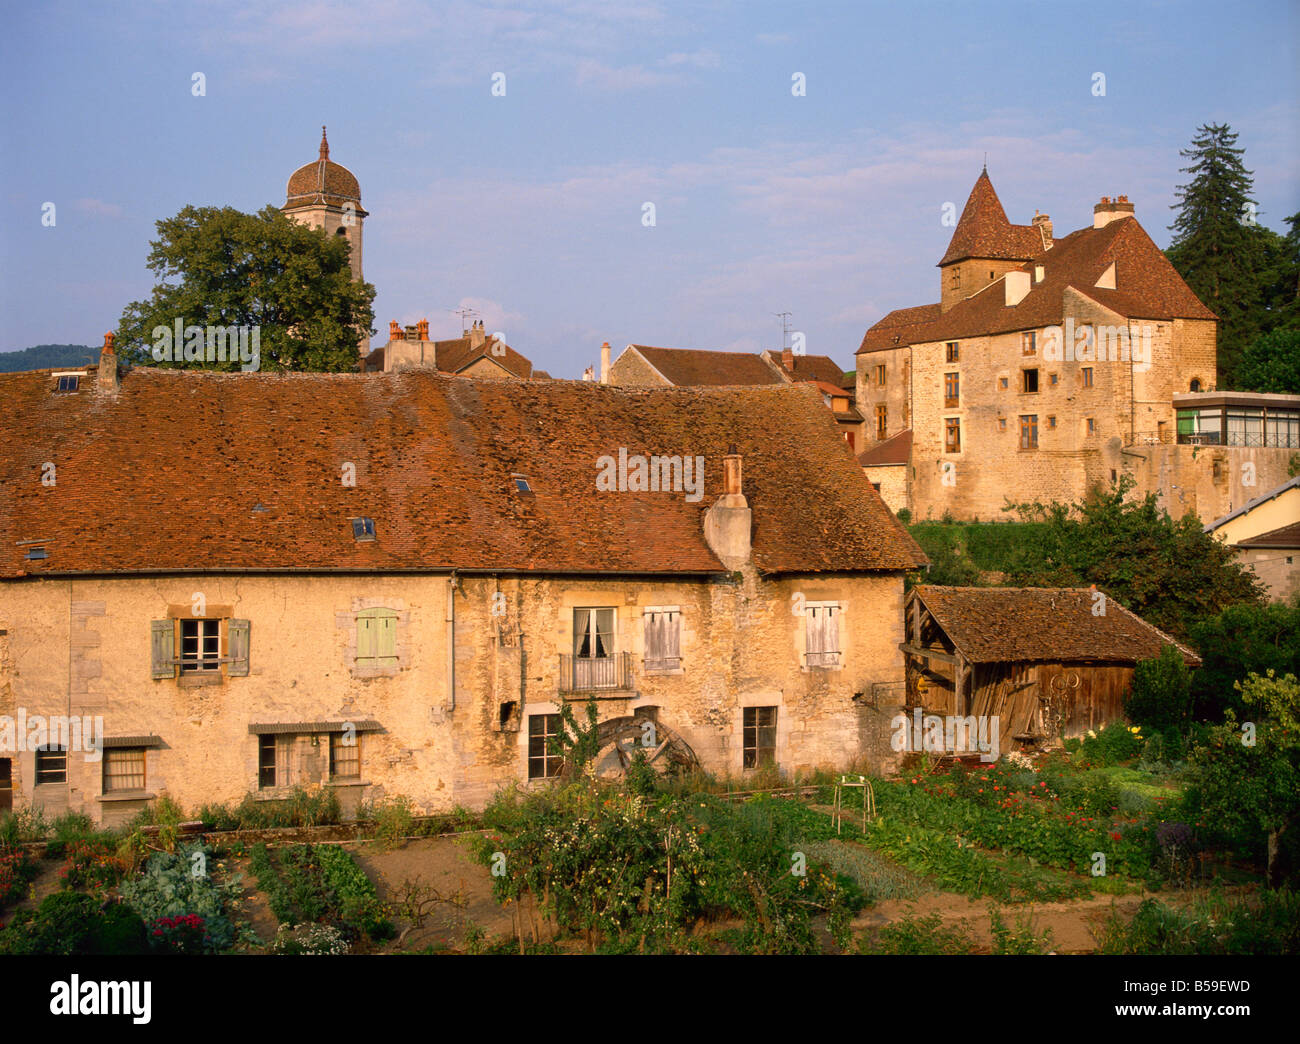 Old stone houses in Arbois, a town associated with Pasteur, Franche-Comte, France - Stock Image